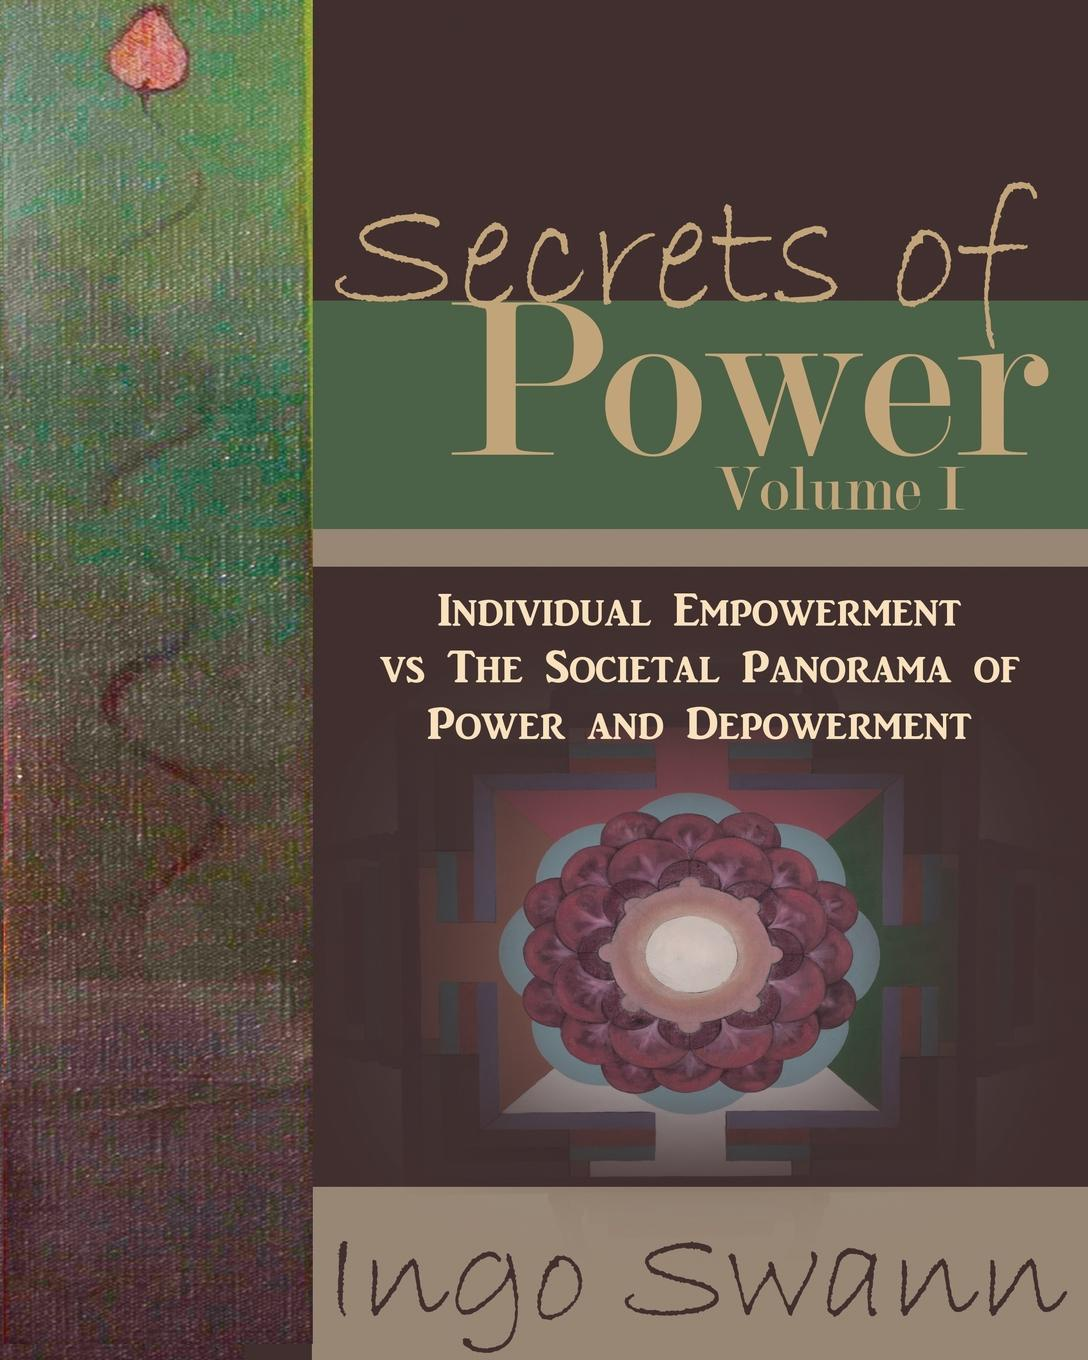 Ingo Swann Secrets of Power, Volume I. Individual Empowerment vs The Societal Panorama of Power and Depowerment nina rae springfields the power of hope